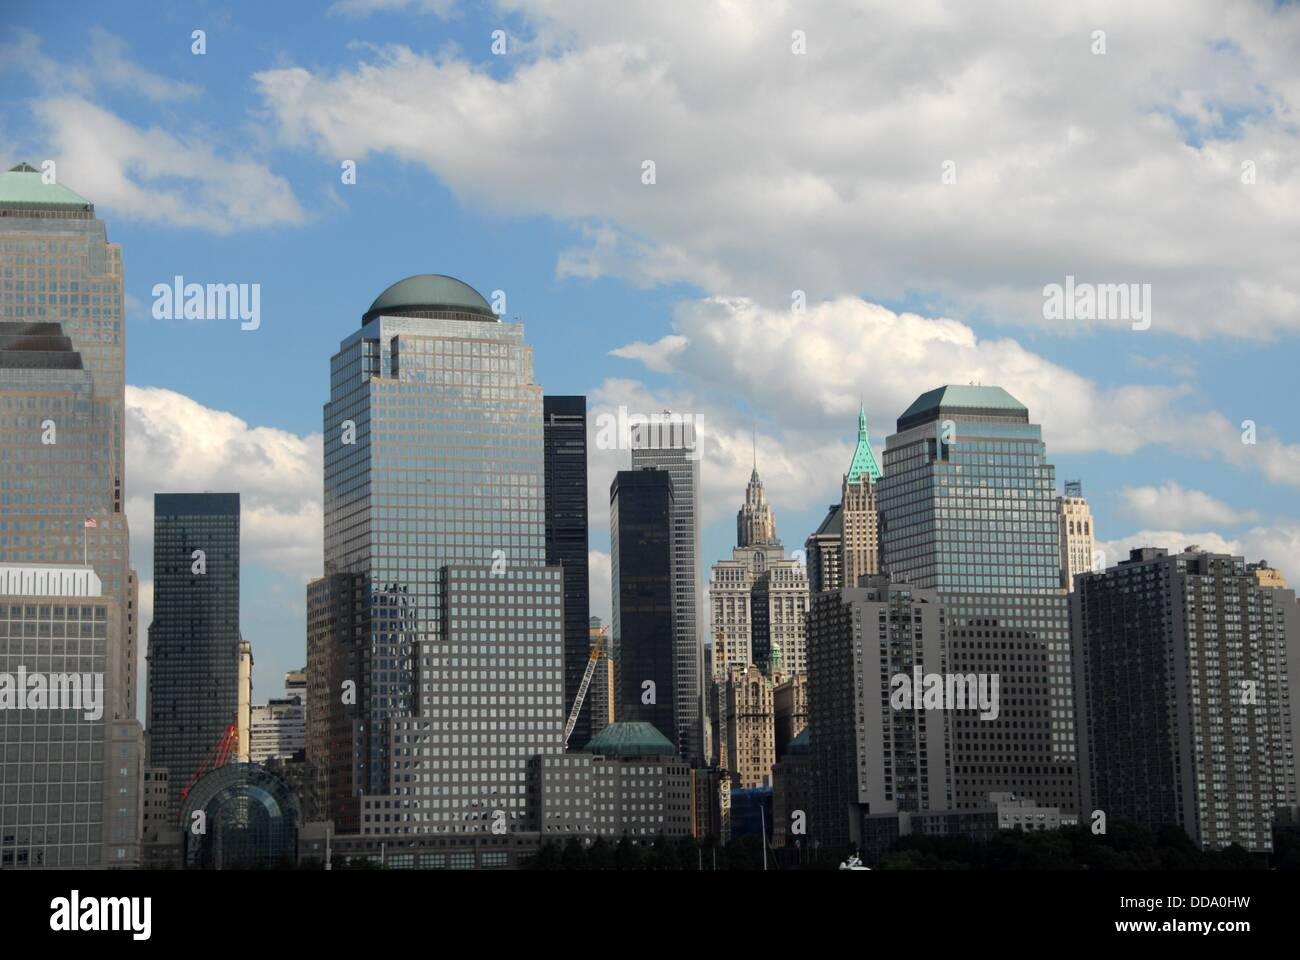 The World Financial Center buildings and Ground Zero from the Hudson River. Lower Manhattan West.  New York, New - Stock Image